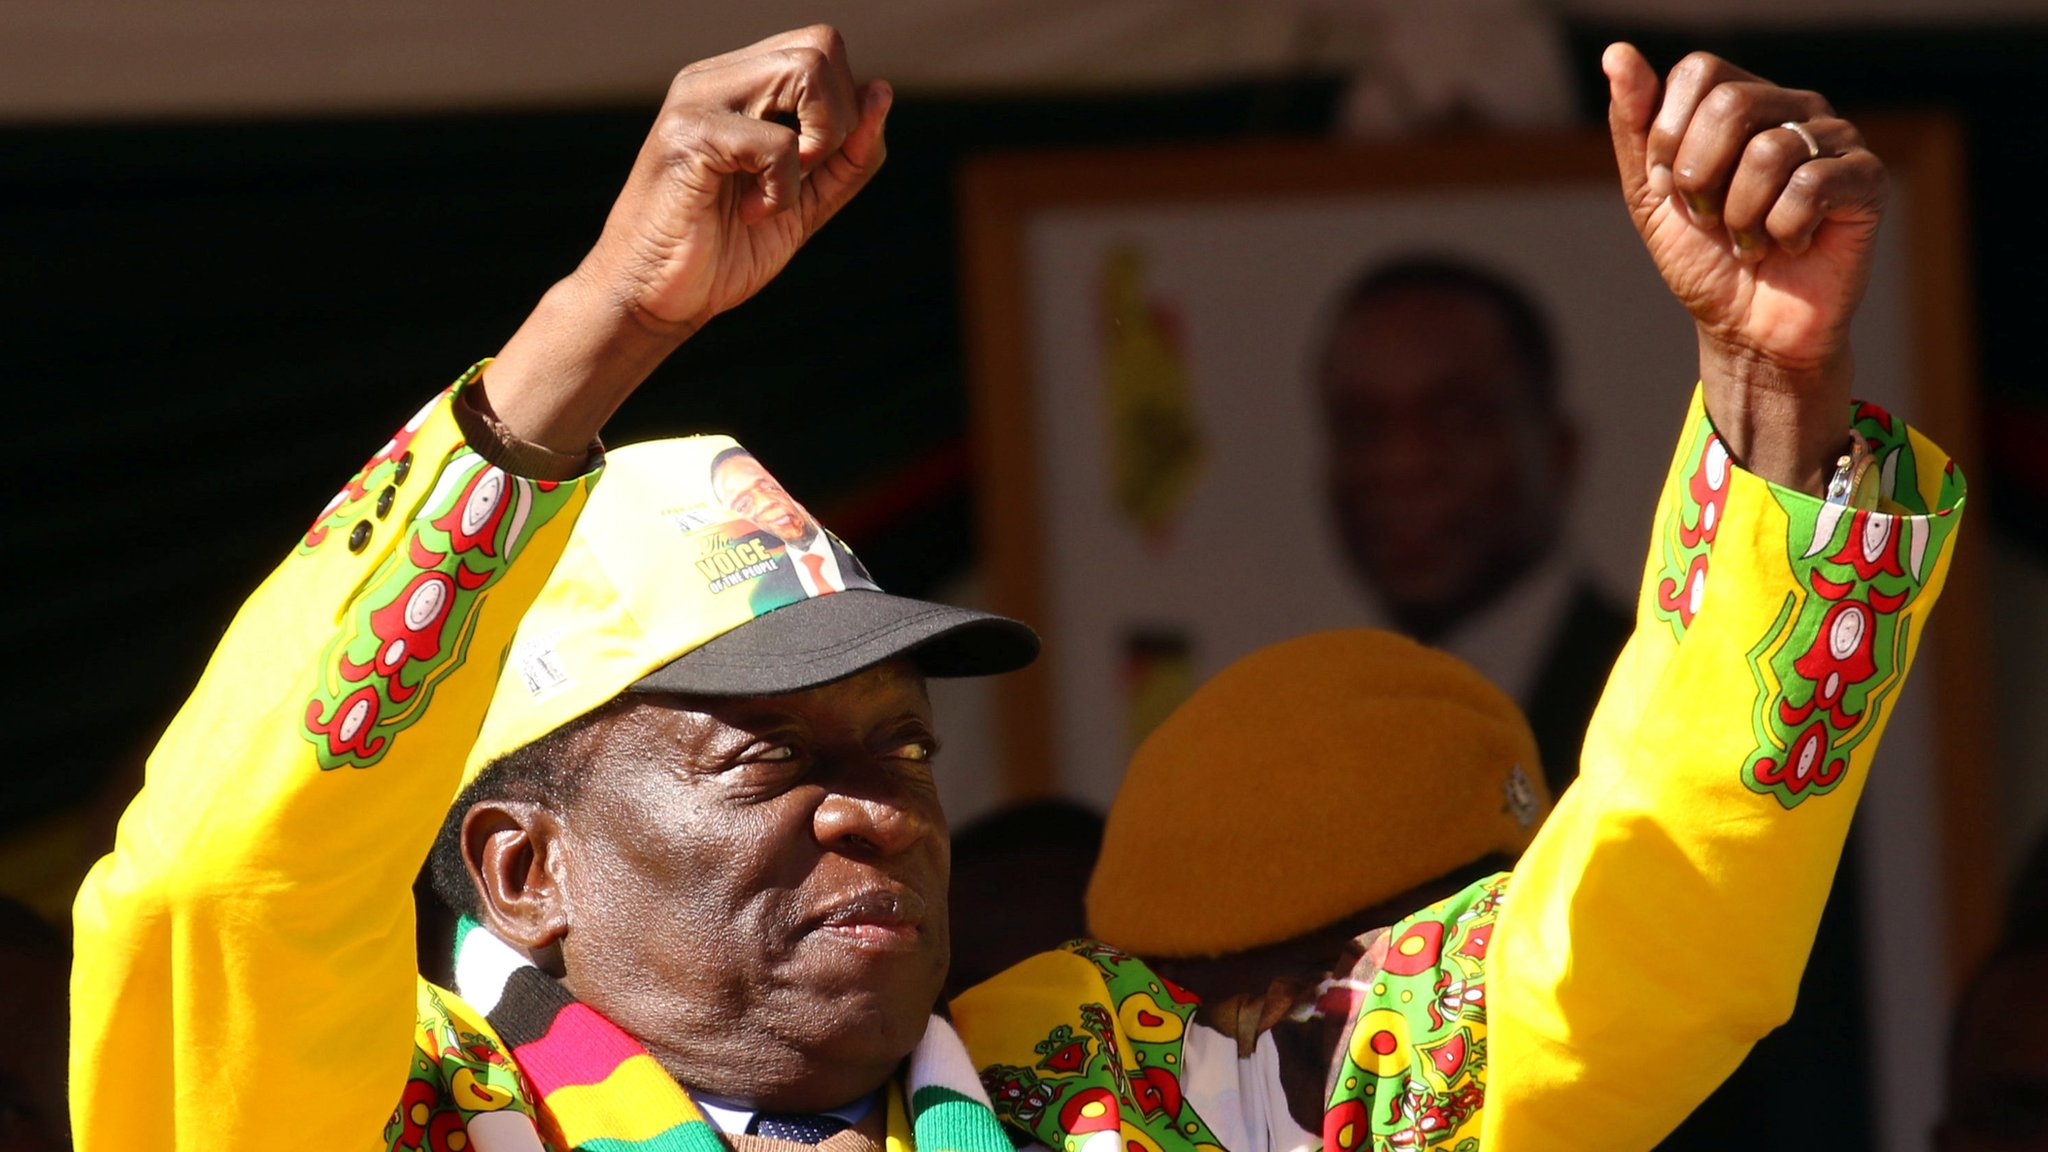 Zimbabwe's President Mnangagwa appeals for racial unity ahead of election